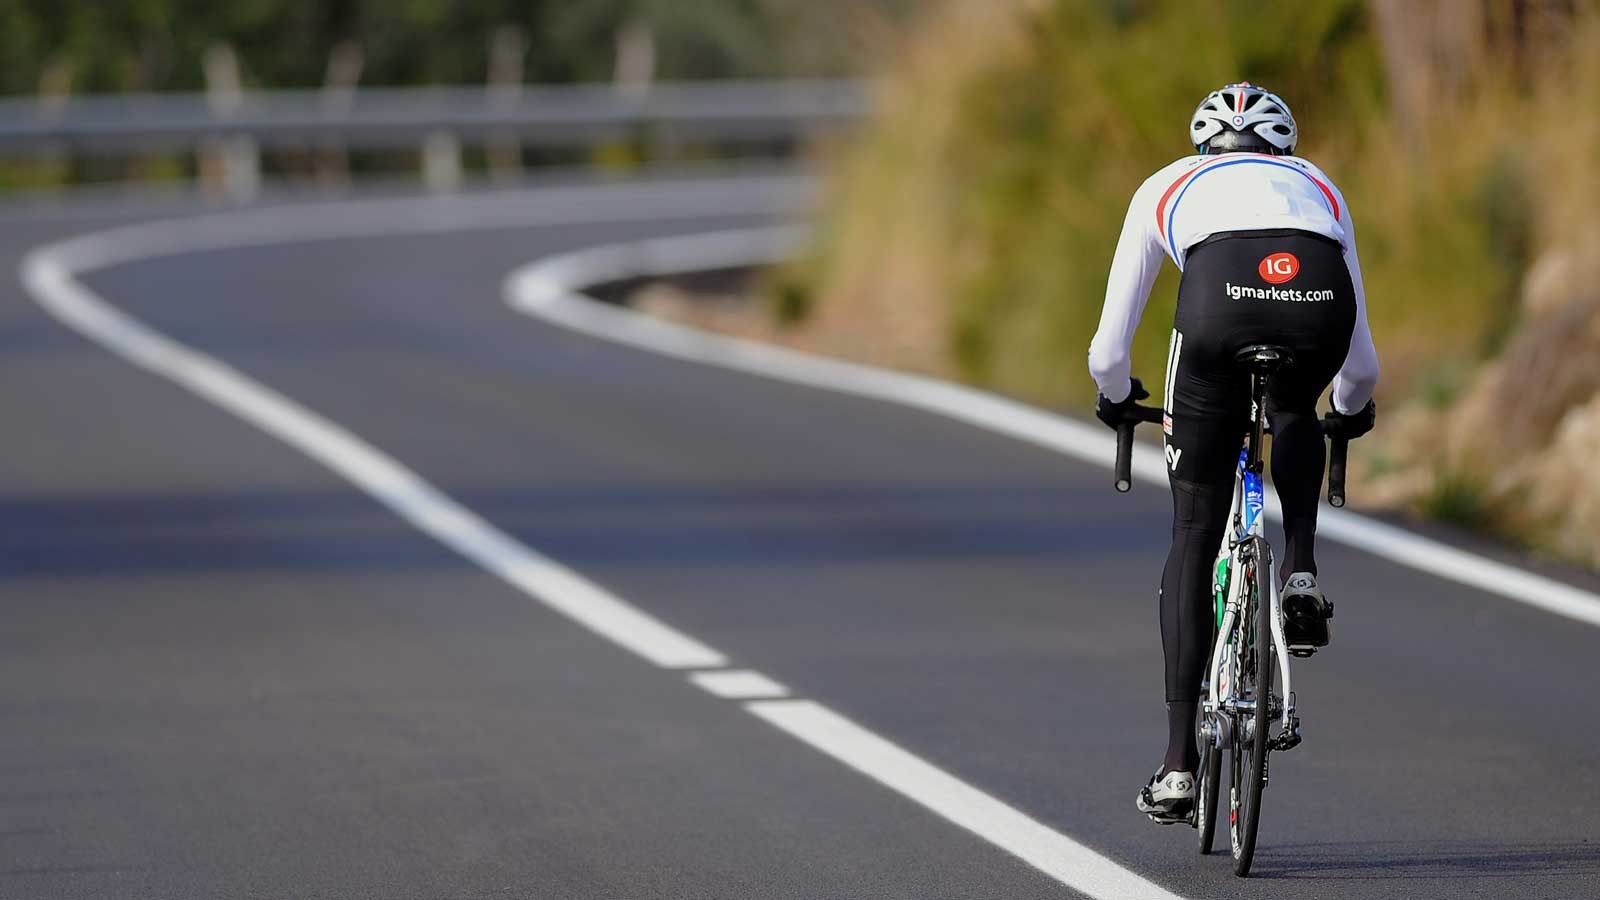 Thinking of doing some cycling abroad? Read our tips before you book anything